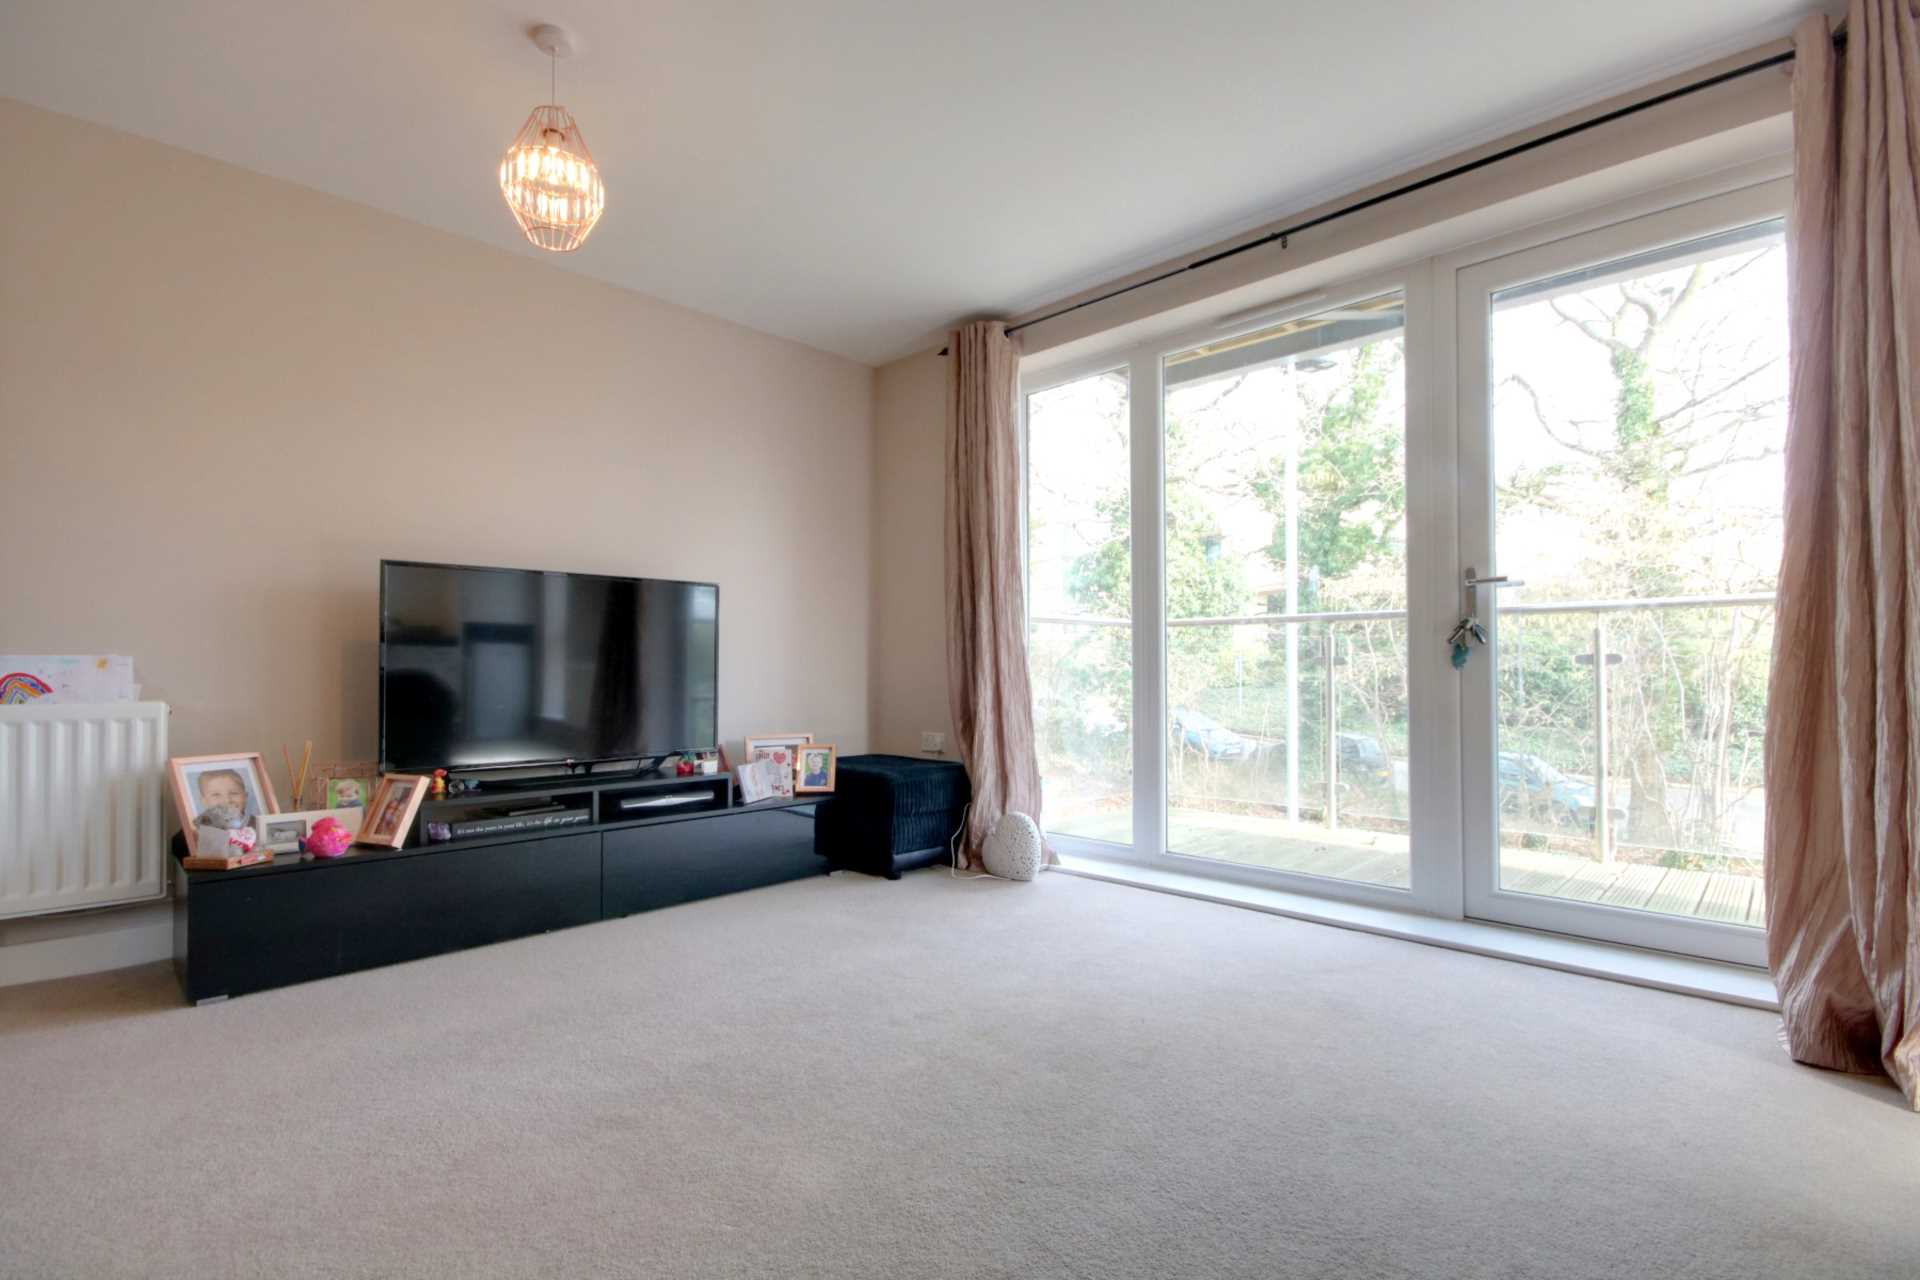 2 DOUBLE BED APARTMENT WITH 2 PARKING SPACES ON MODERN DEVELOPMENT., Image 4